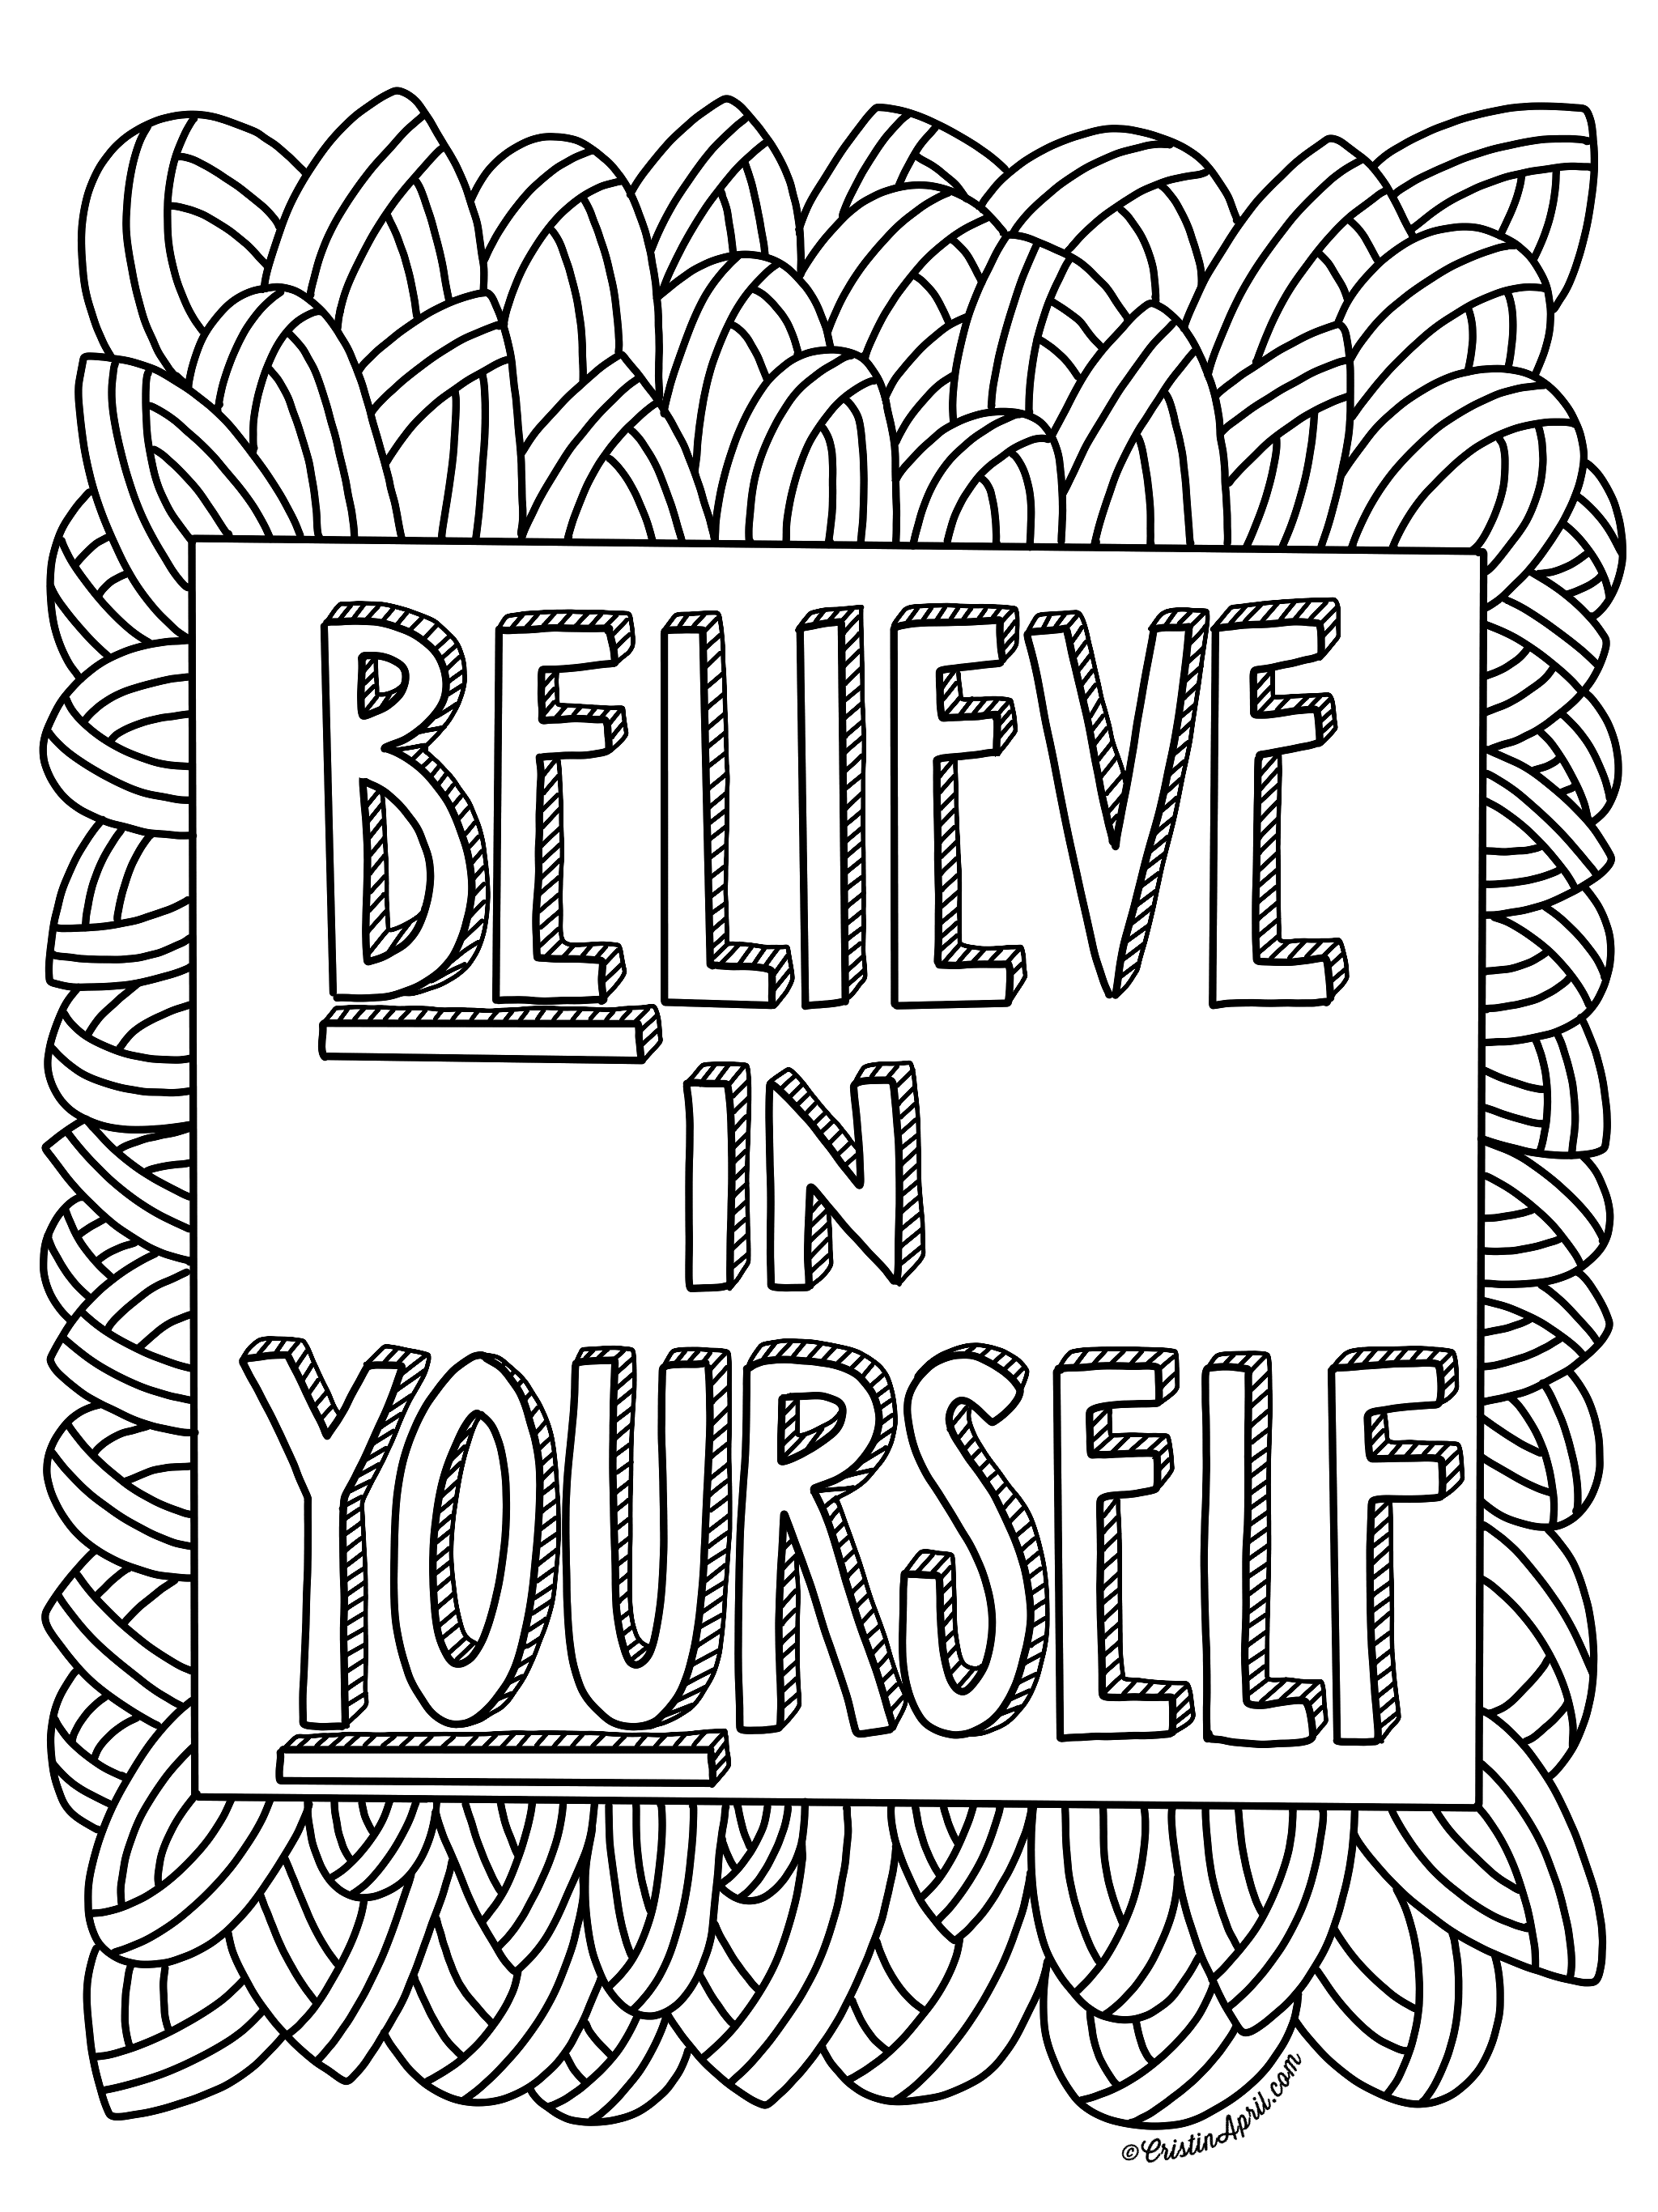 Believe in Yourself, Free Coloring Page - Payhip